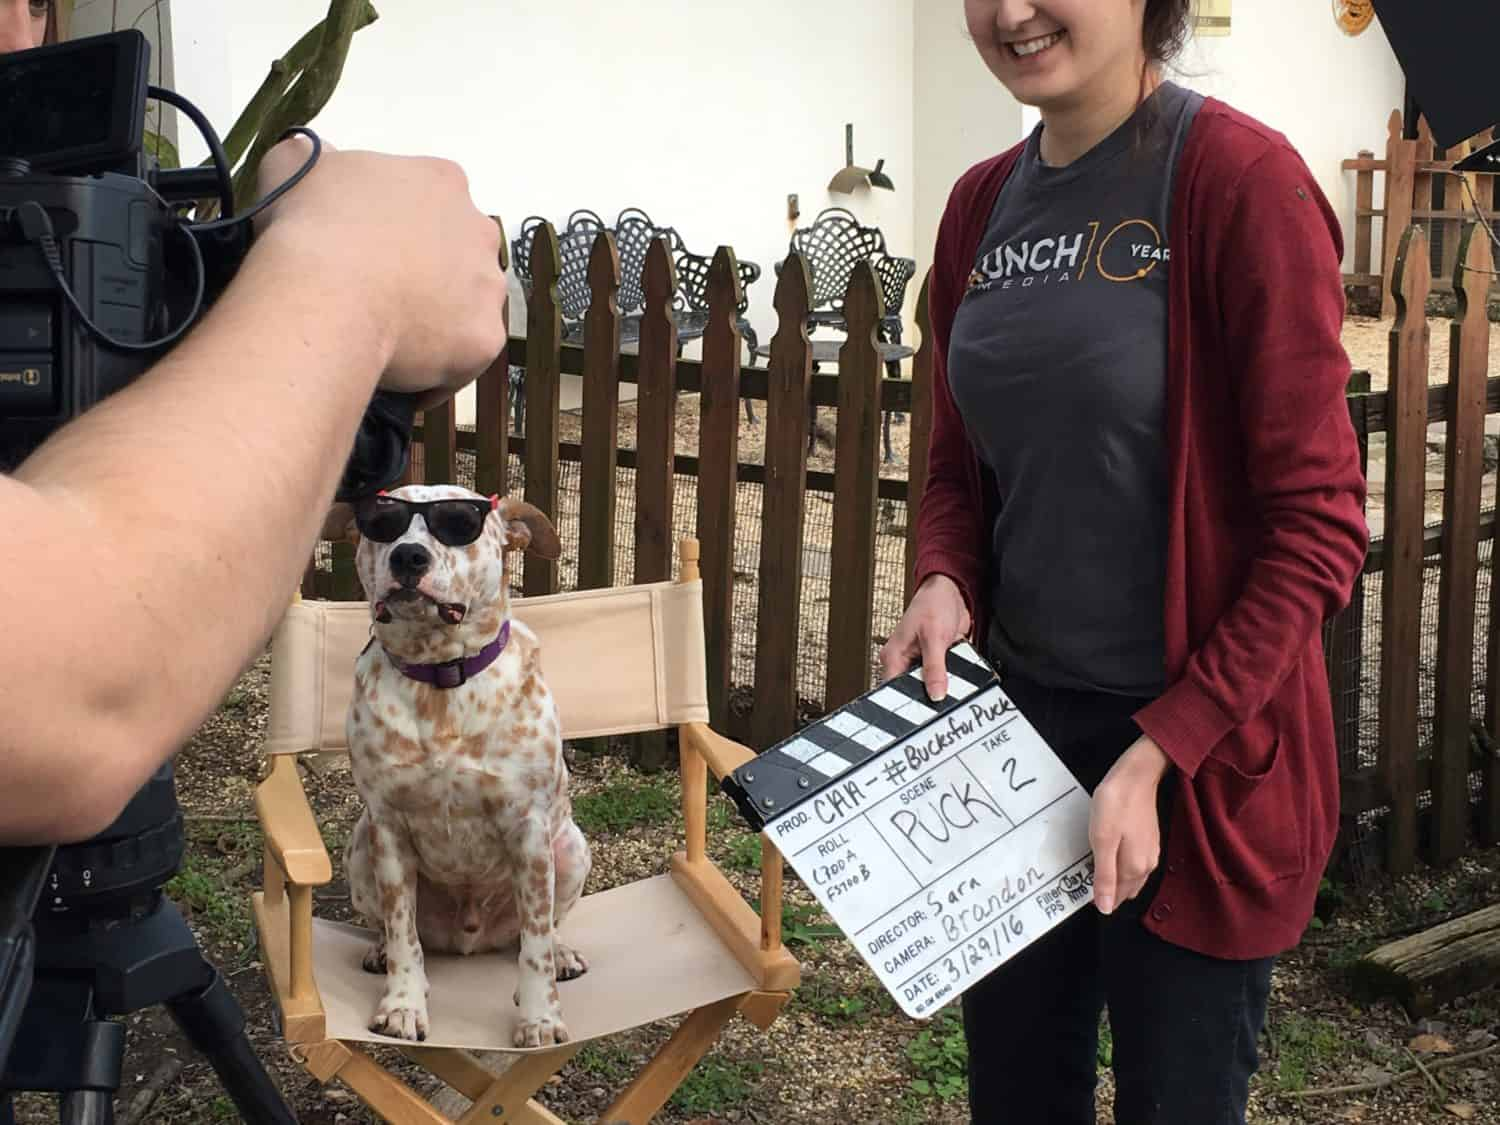 A camera woman prepares for take 2 of a spotted dog for a Cane's commericial